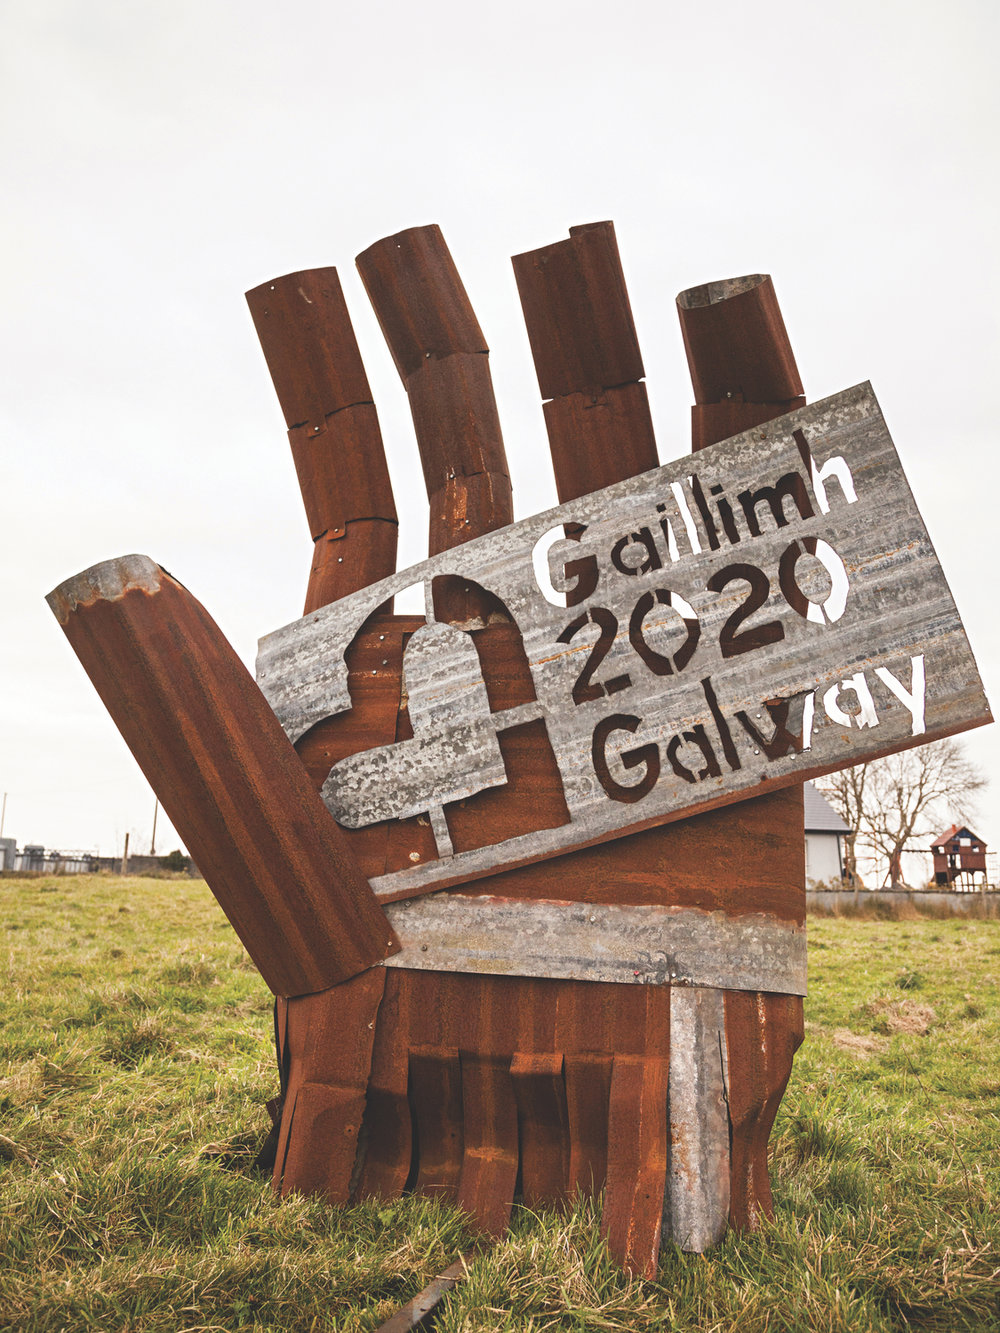 Sculptor Eugene Finnegan helped promote the 2020 bid with his massive sculpture made from found and reclaimed items.